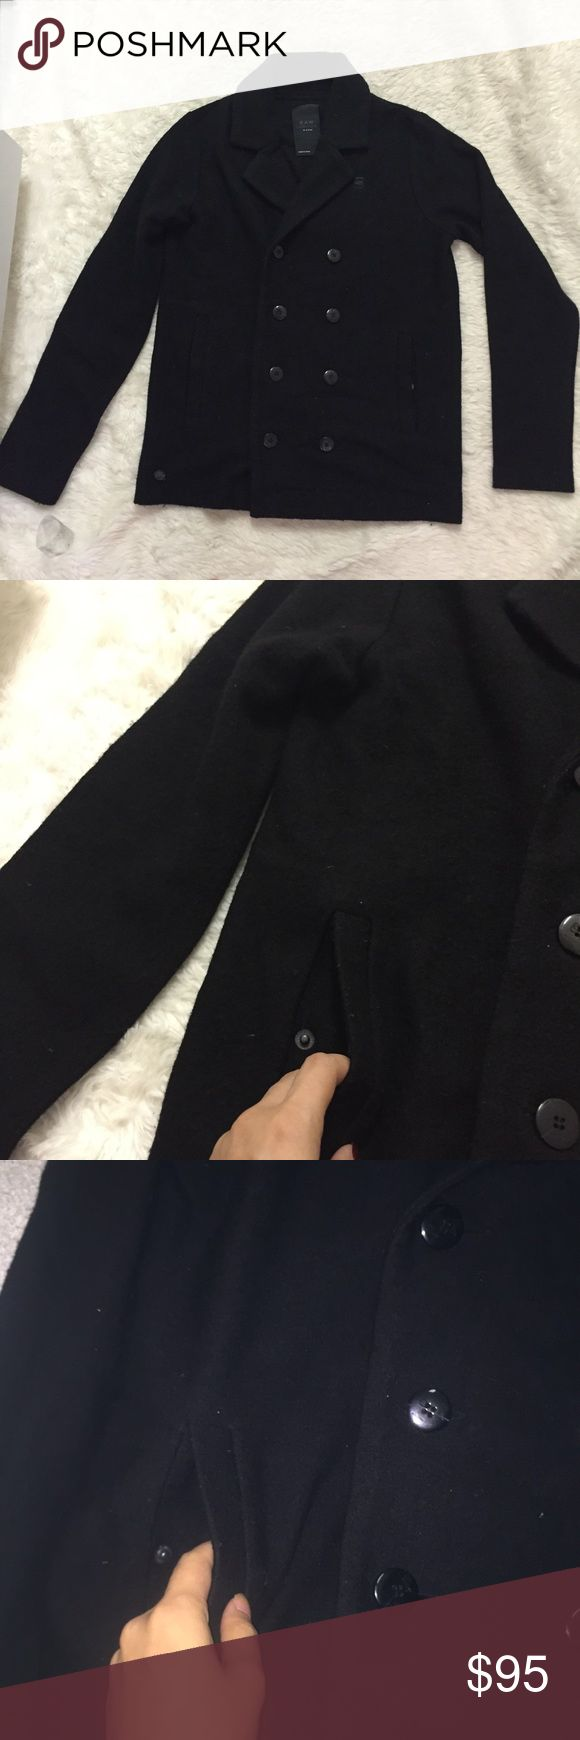 G star raw black coat Essential coat for the winter. Light weight yet will keep you warm size M black. Pockets G Star Jackets & Coats